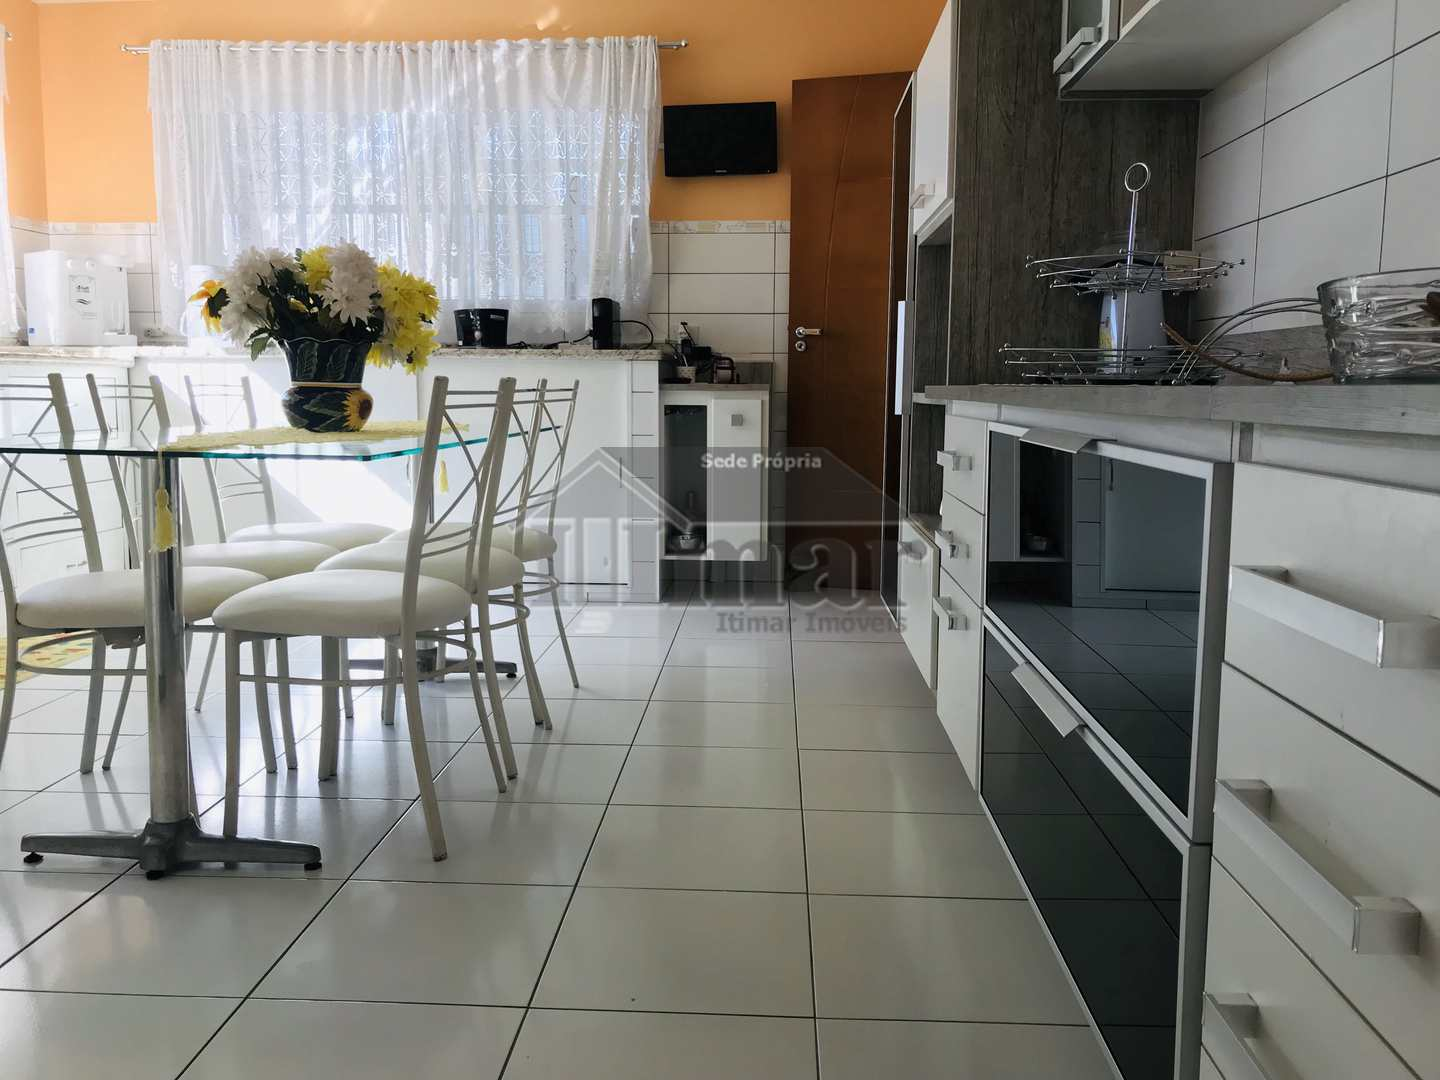 Casa Sobrado, 5 suítes, piscina, chur, local nobre, Guarujá, SP